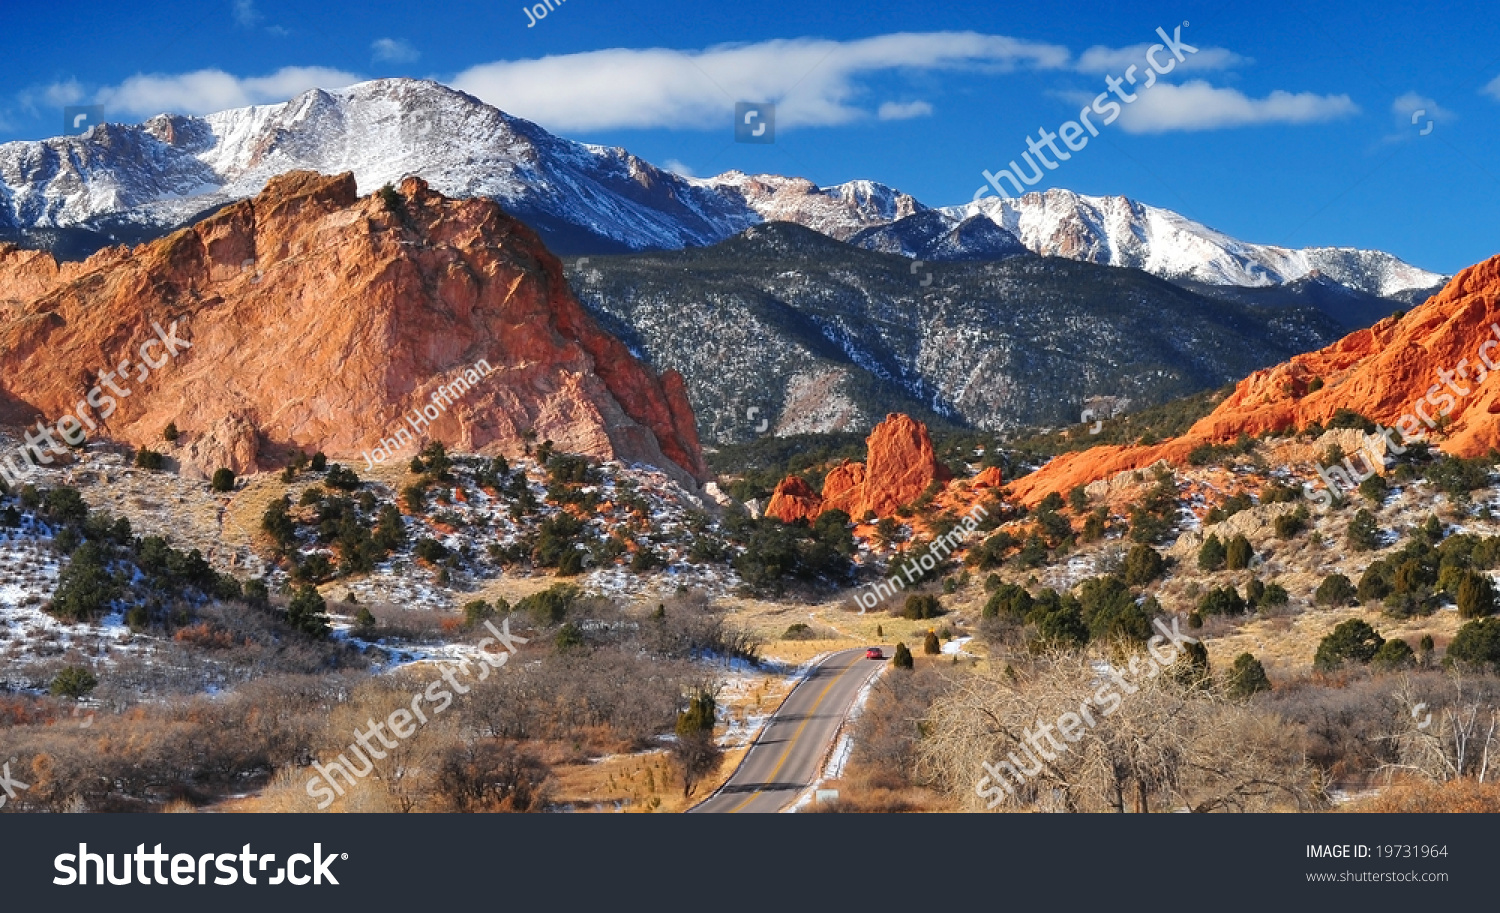 Pike Nursery Near Me: Pikes Peak Soaring Over Garden Gods Stock Photo 19731964